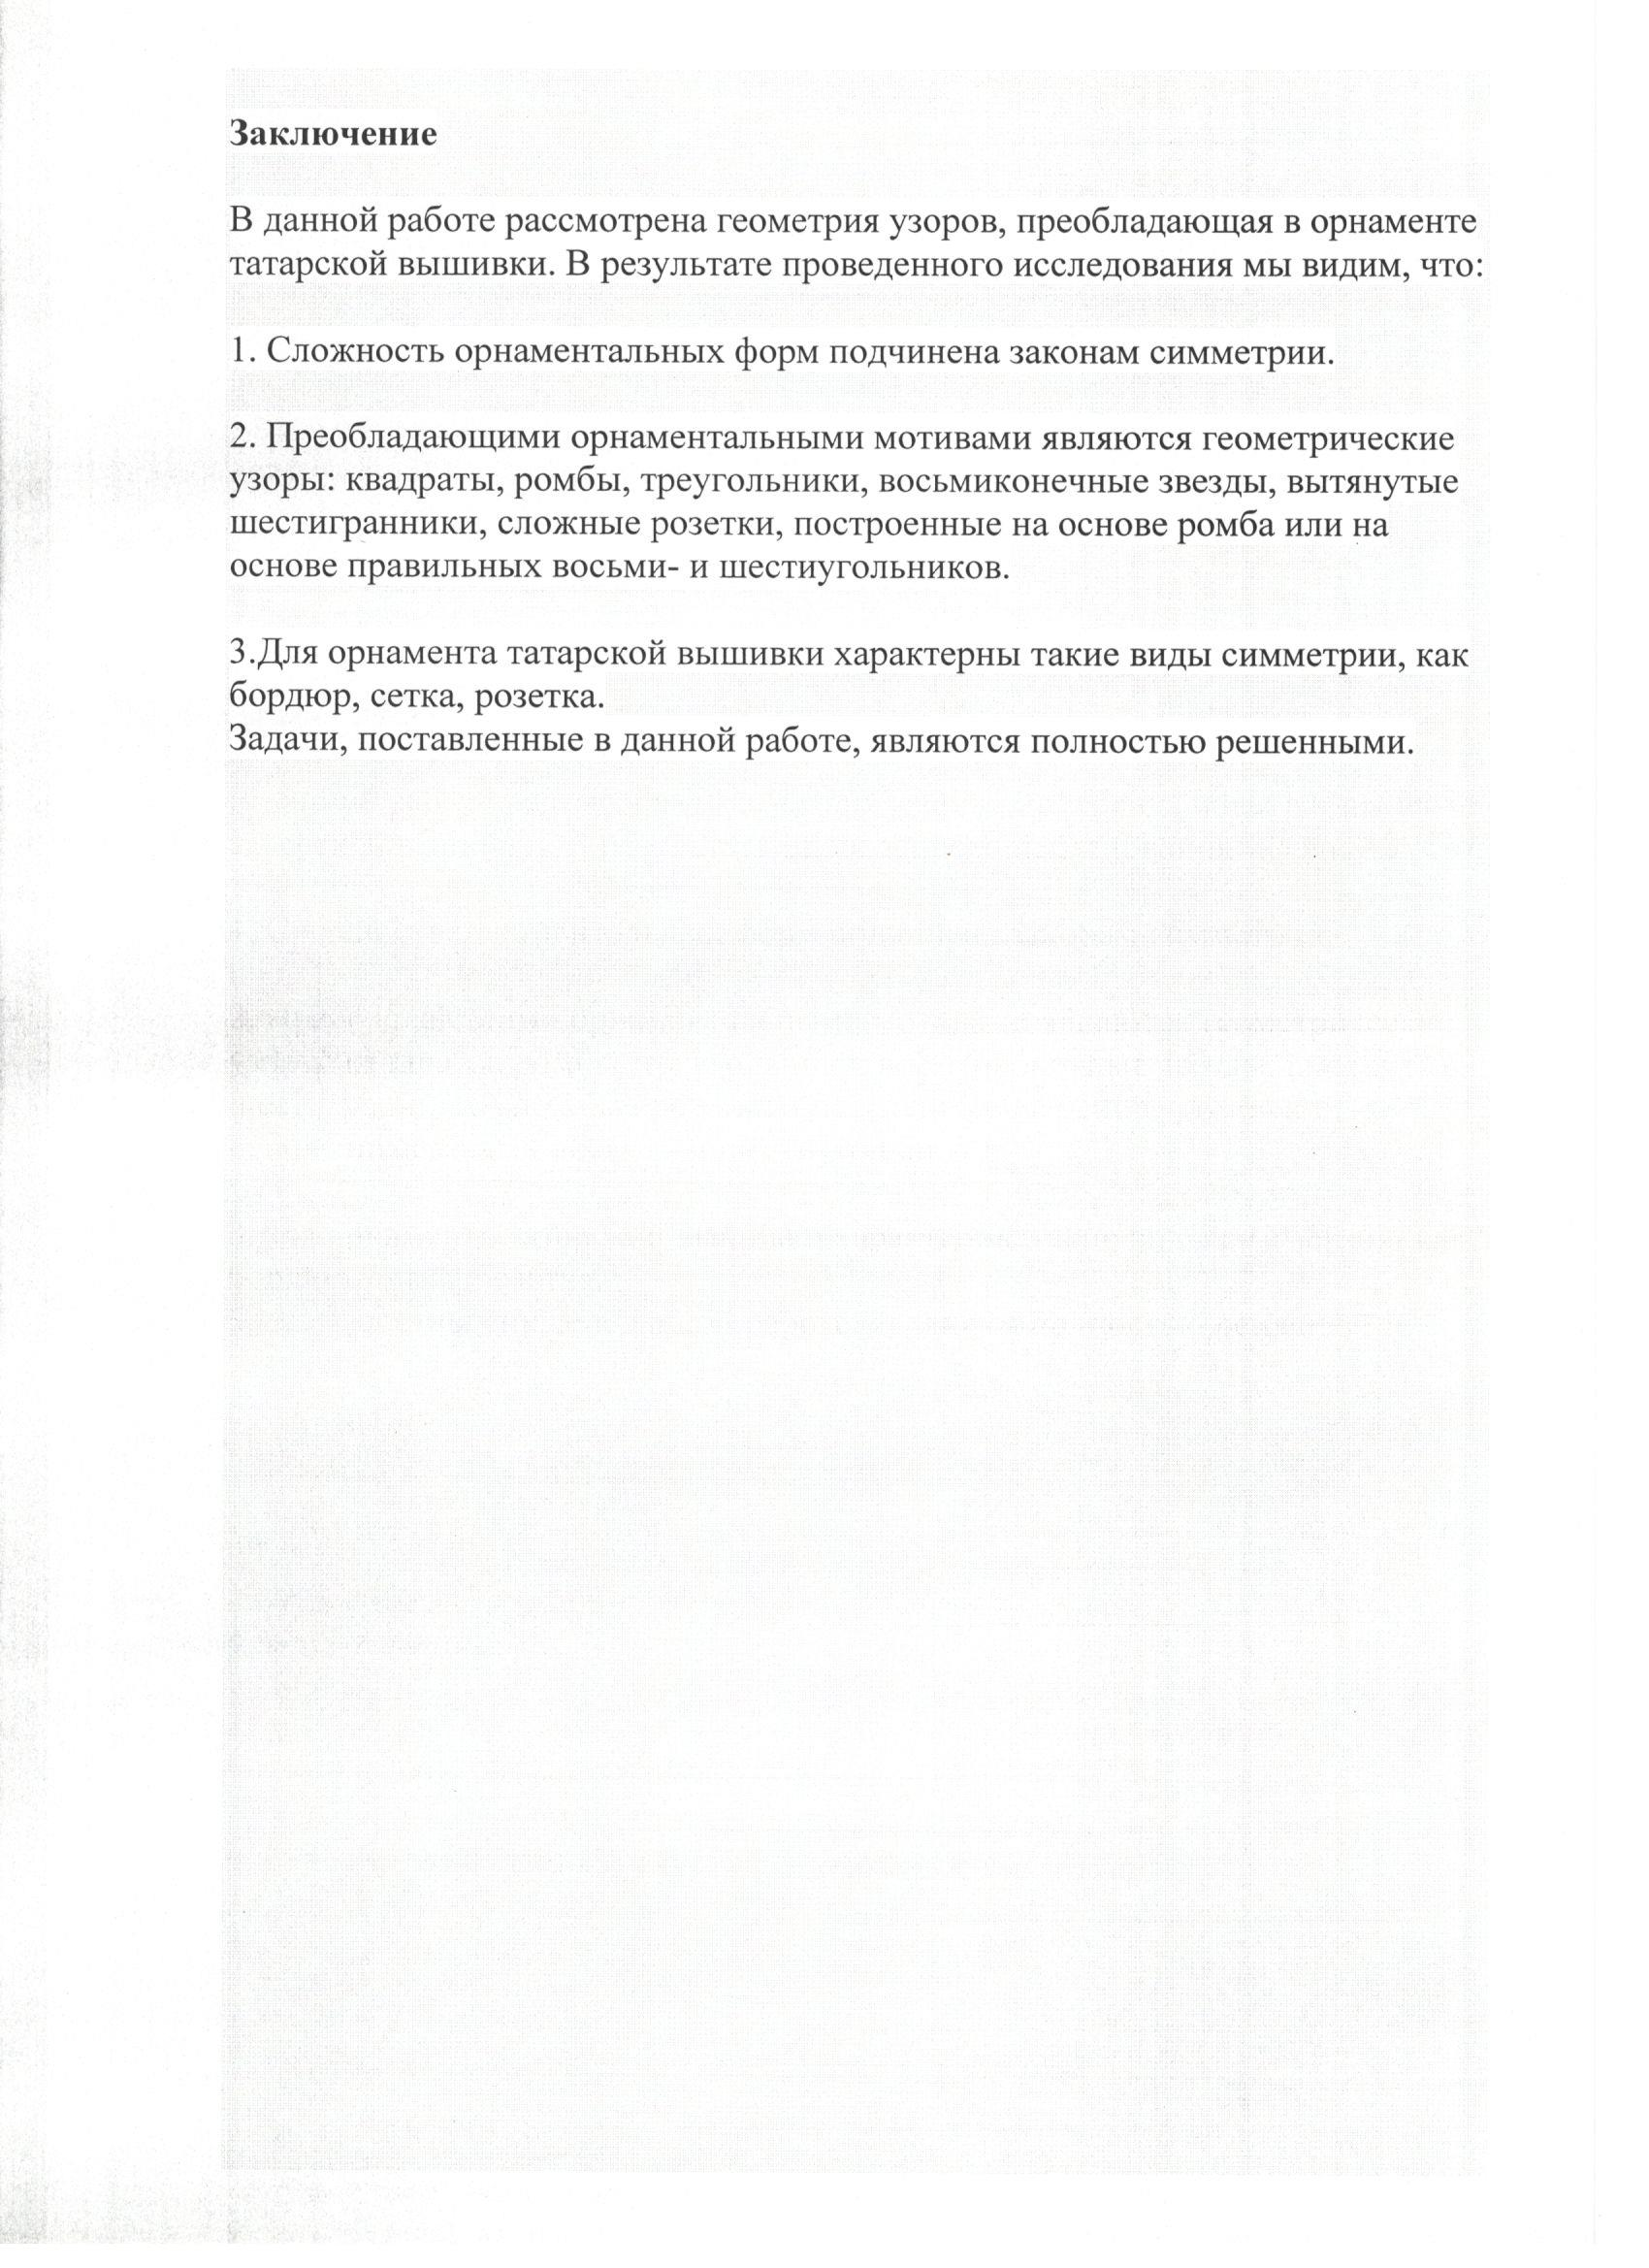 C:\Users\User\Desktop\Разработки\13.jpg